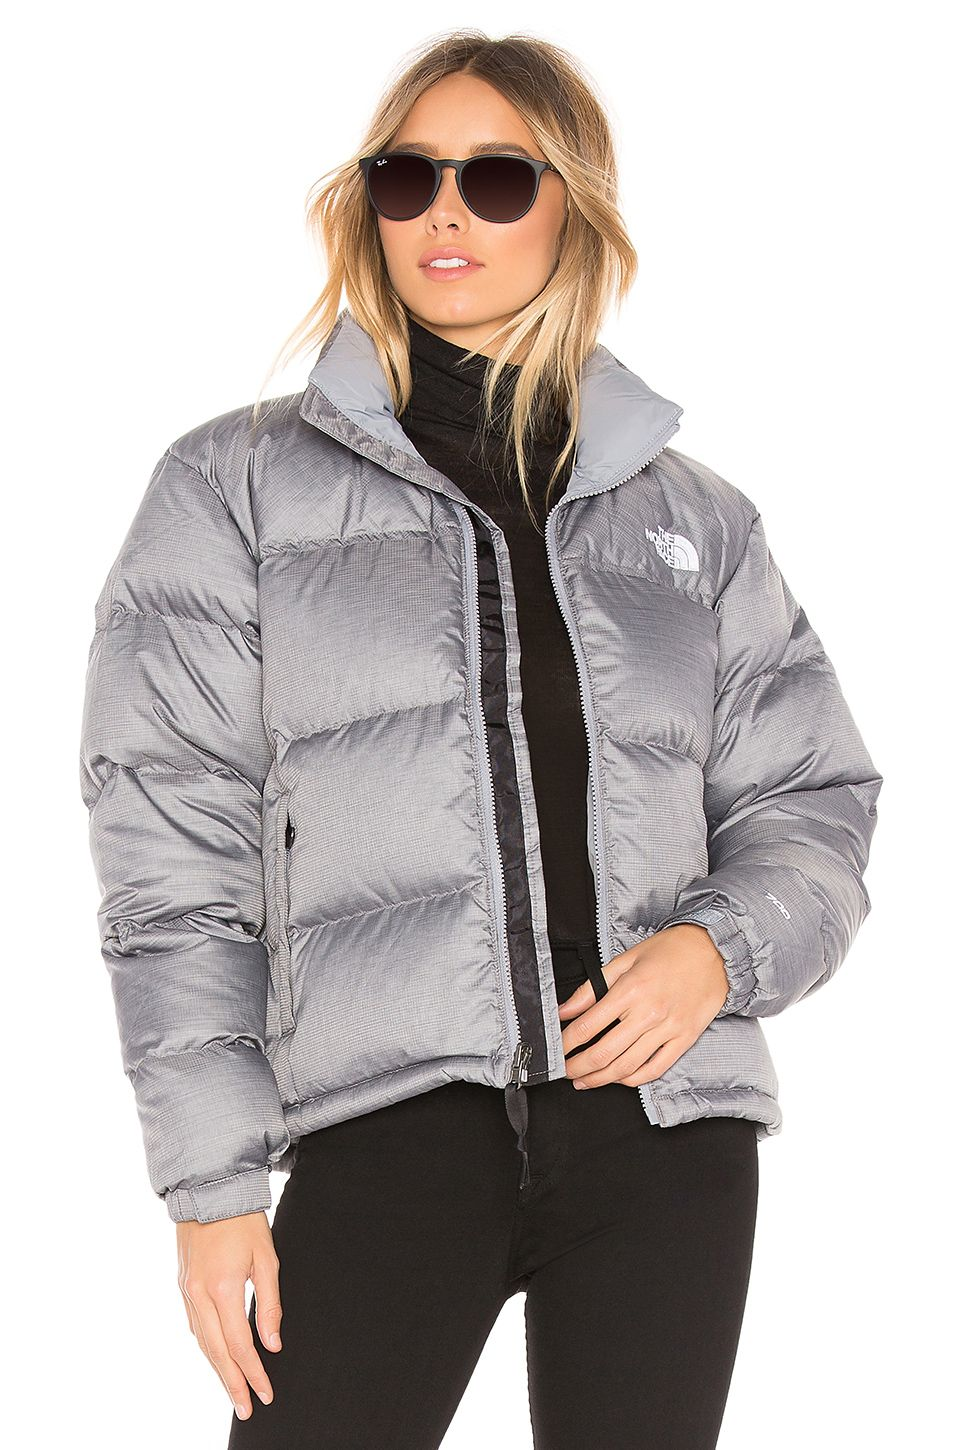 2154e44bf The North Face 1996 Retro Nuptse Jacket in TNF Medium Grey Heather ...